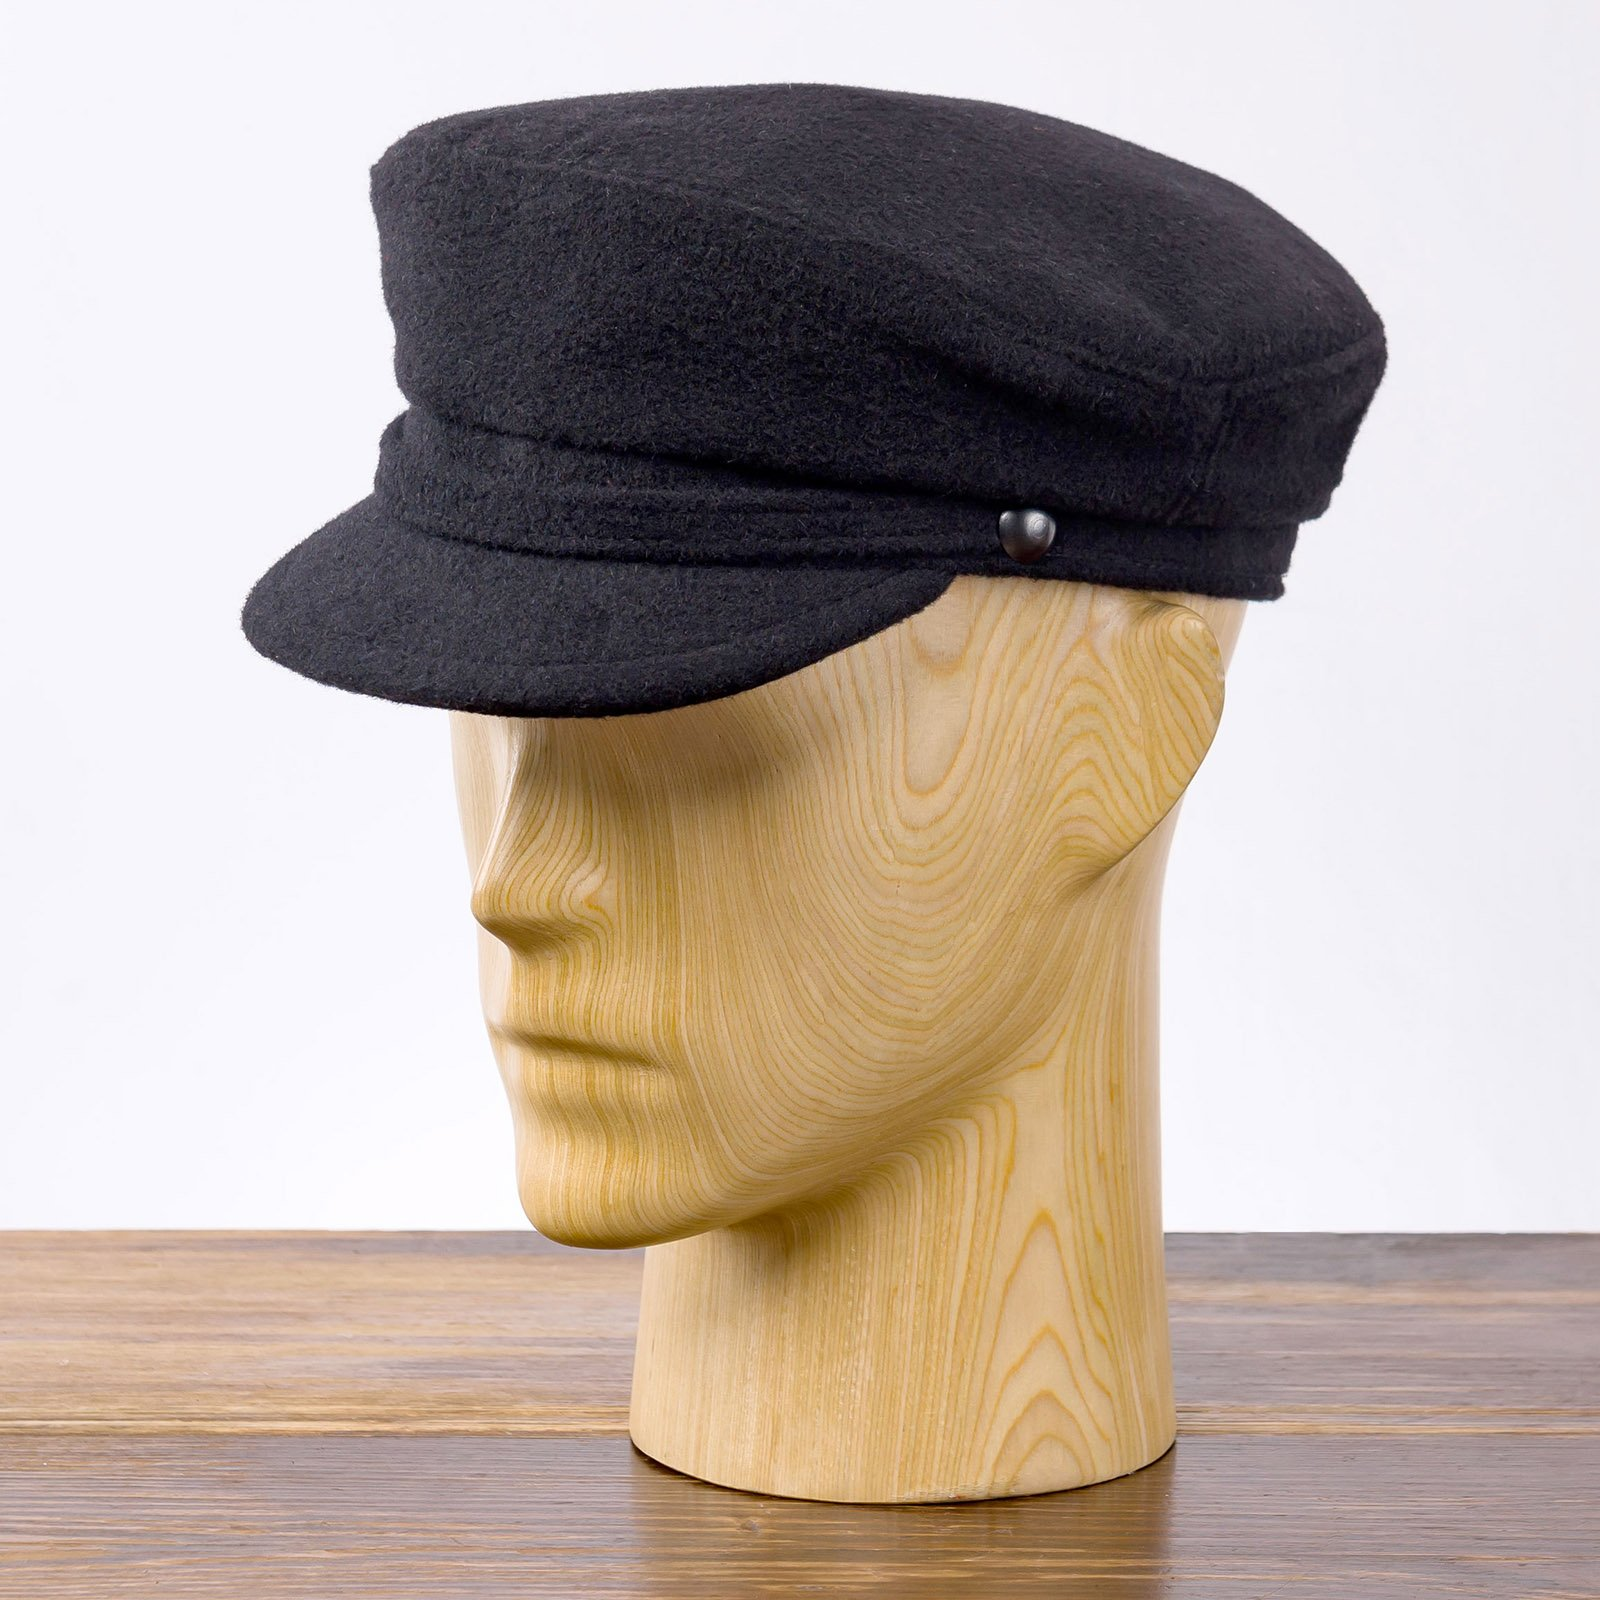 Melton wool greek fisherman breton cap sailor captains nautical skipper seaman mariner boatman